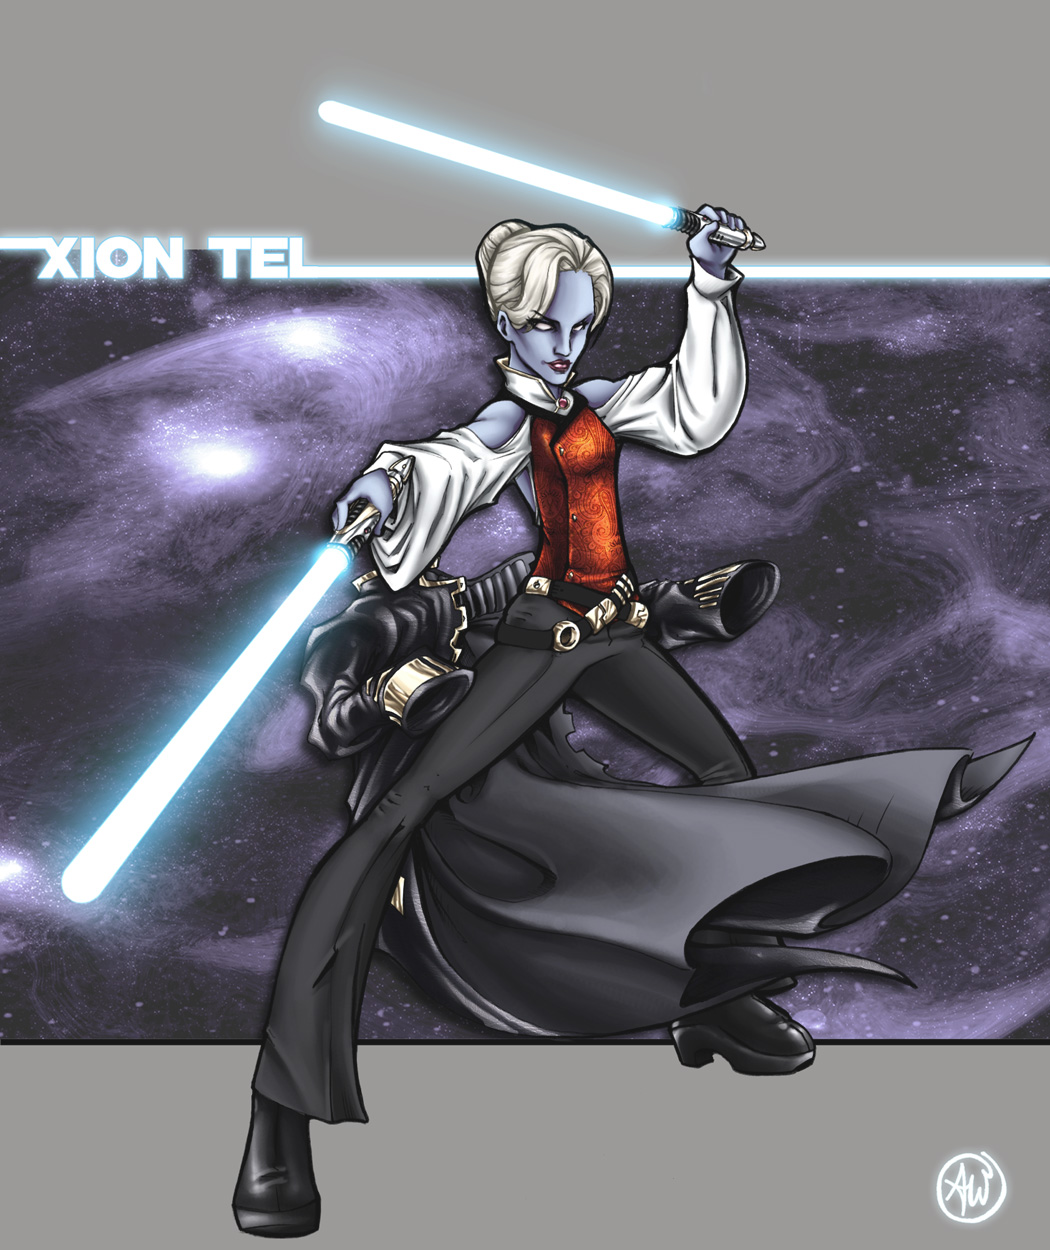 Xion Tel, Jedi Master by AdamWithers